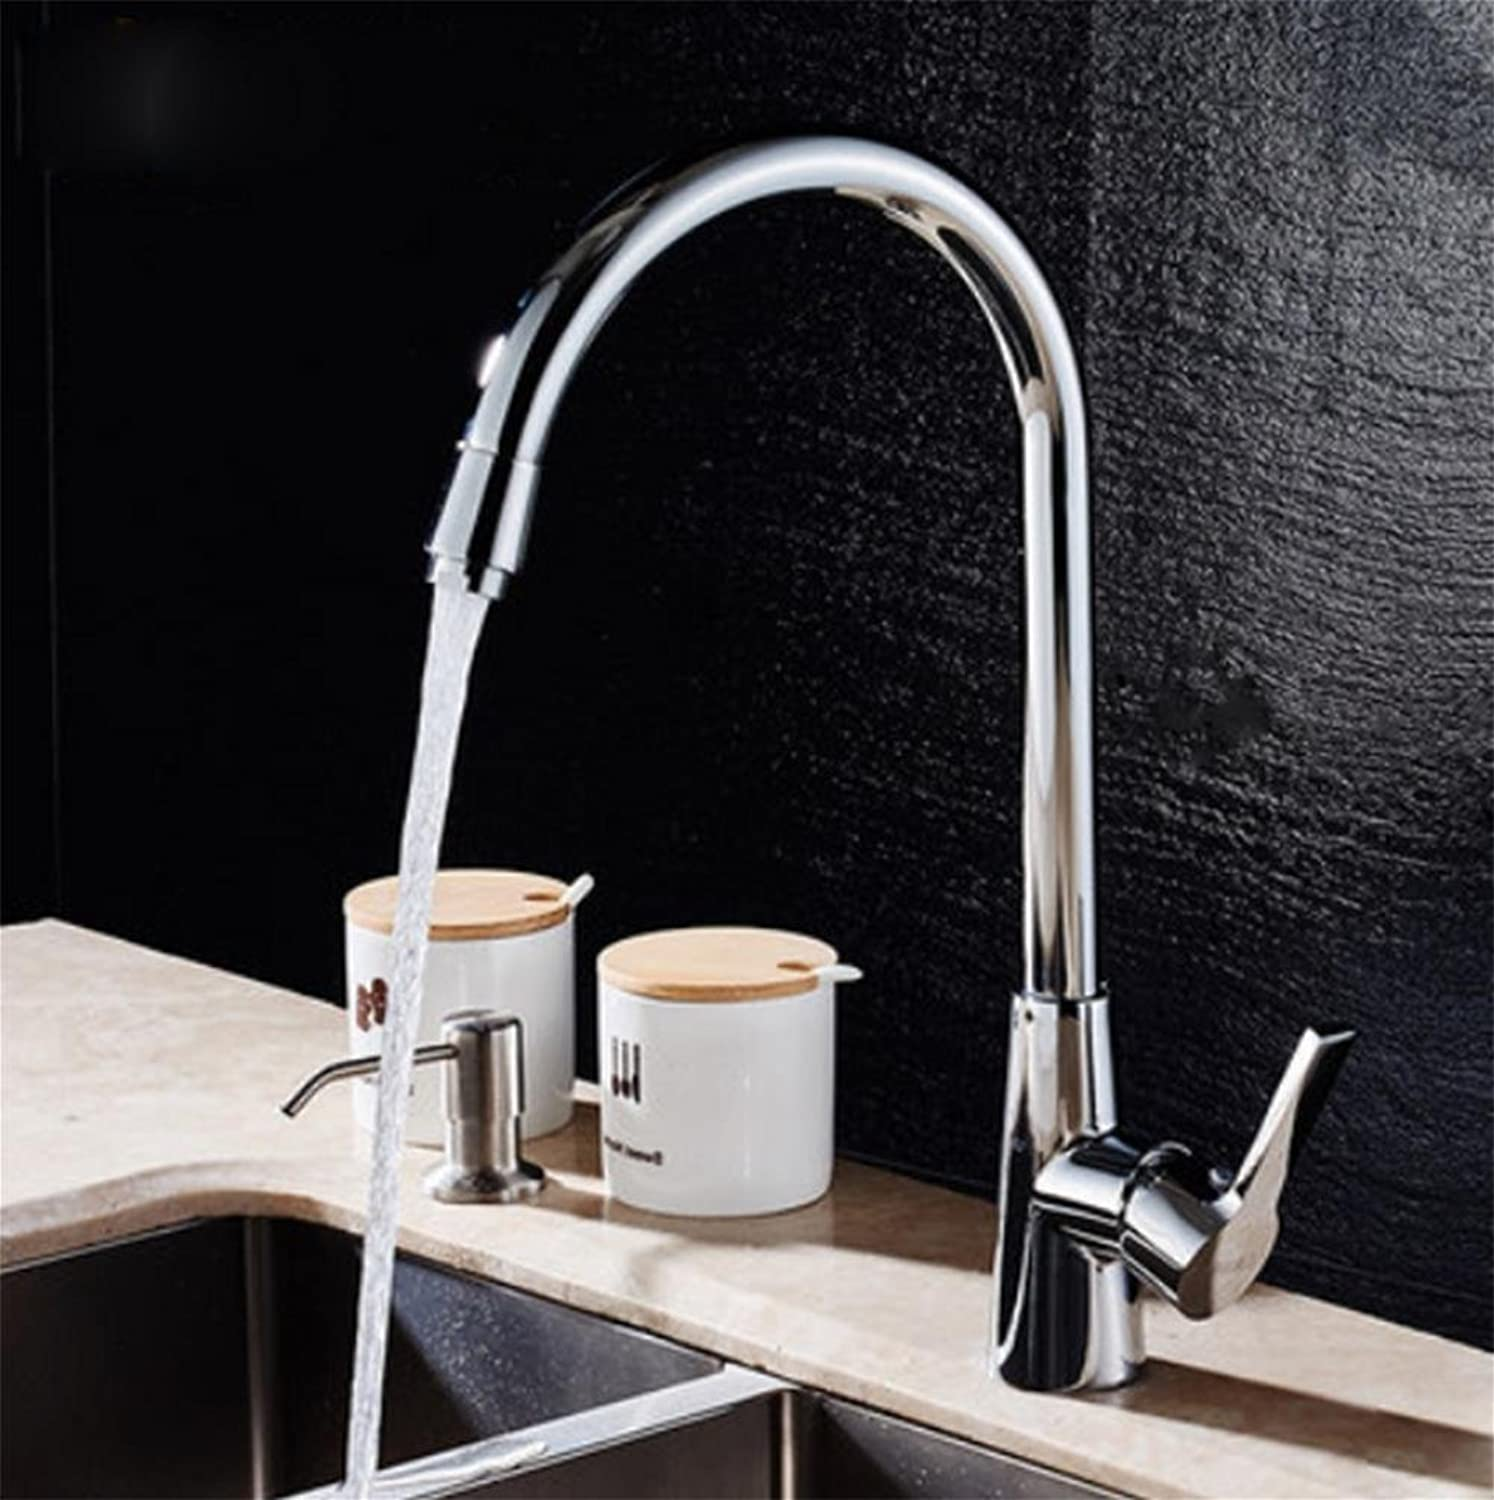 Kitchen faucet hot and cold faucet washing Caipen bathroom